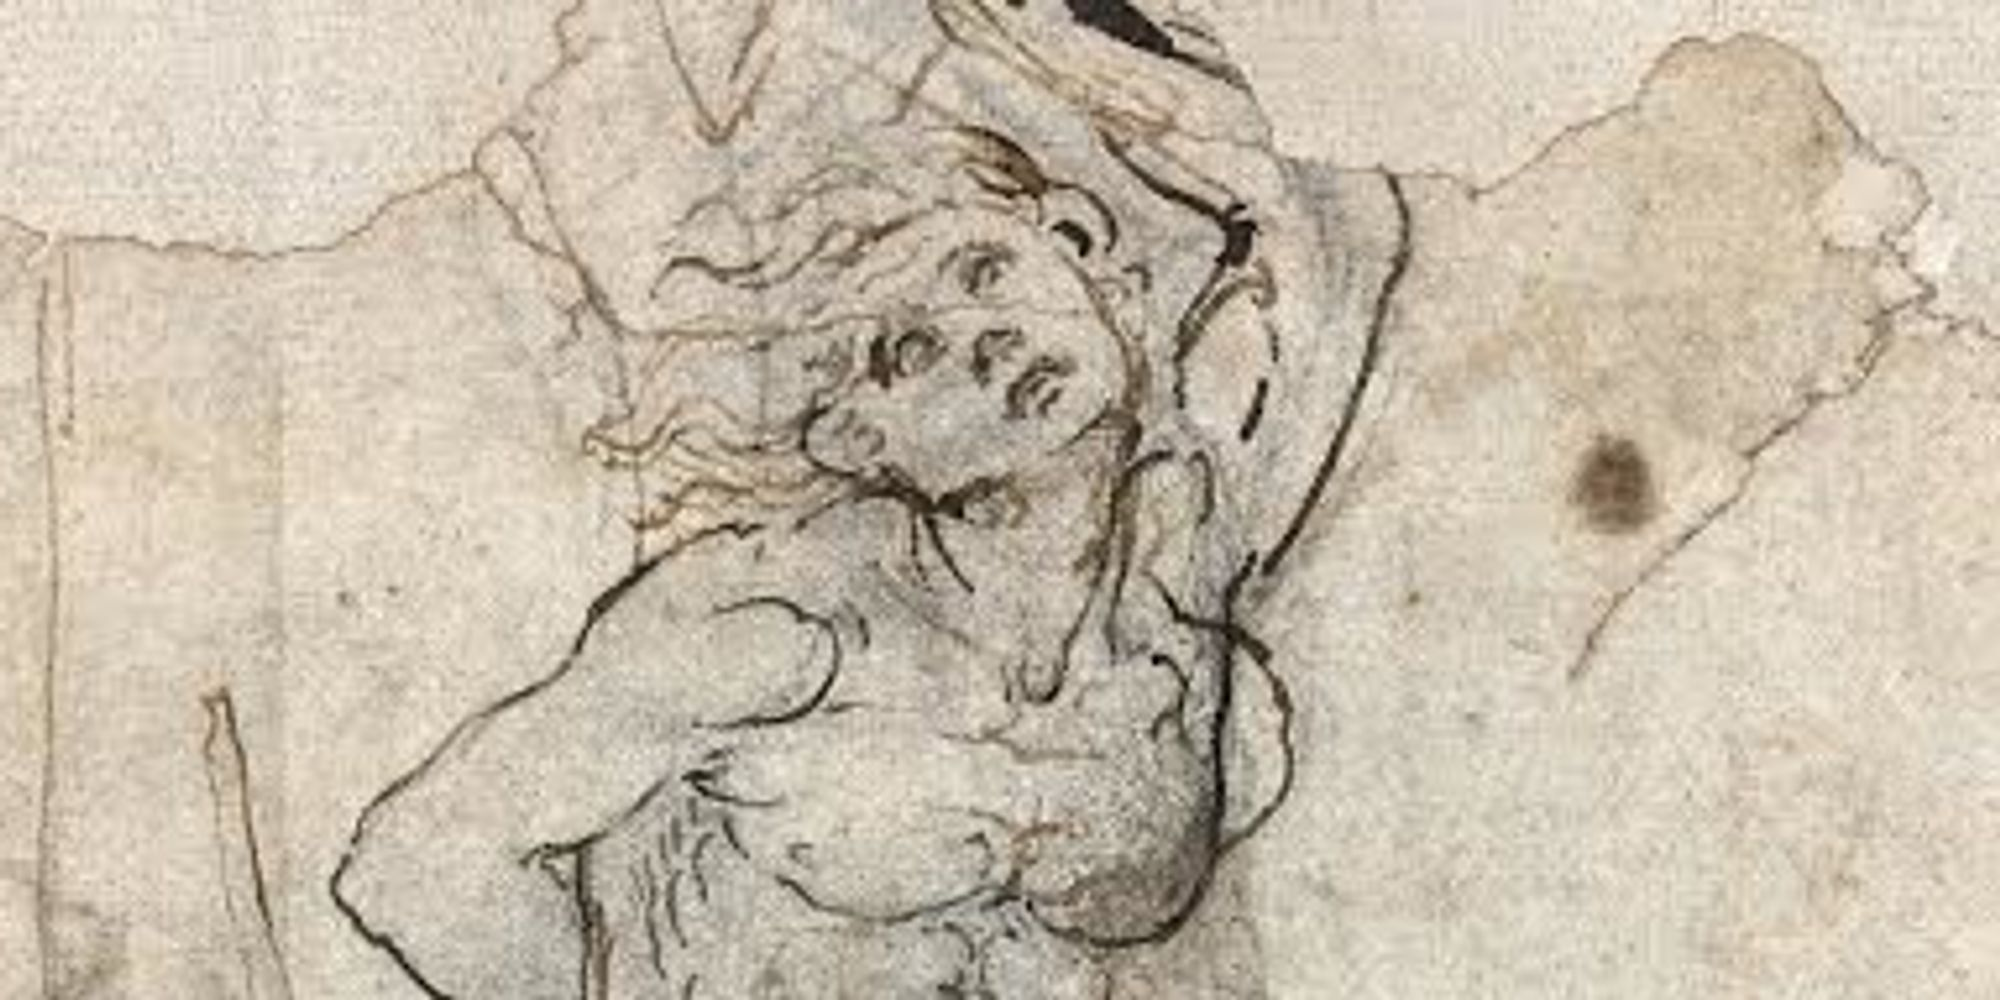 retired doctor unearths lost leonardo da vinci drawing worth 16 retired doctor unearths lost leonardo da vinci drawing worth 16 million the huffington post